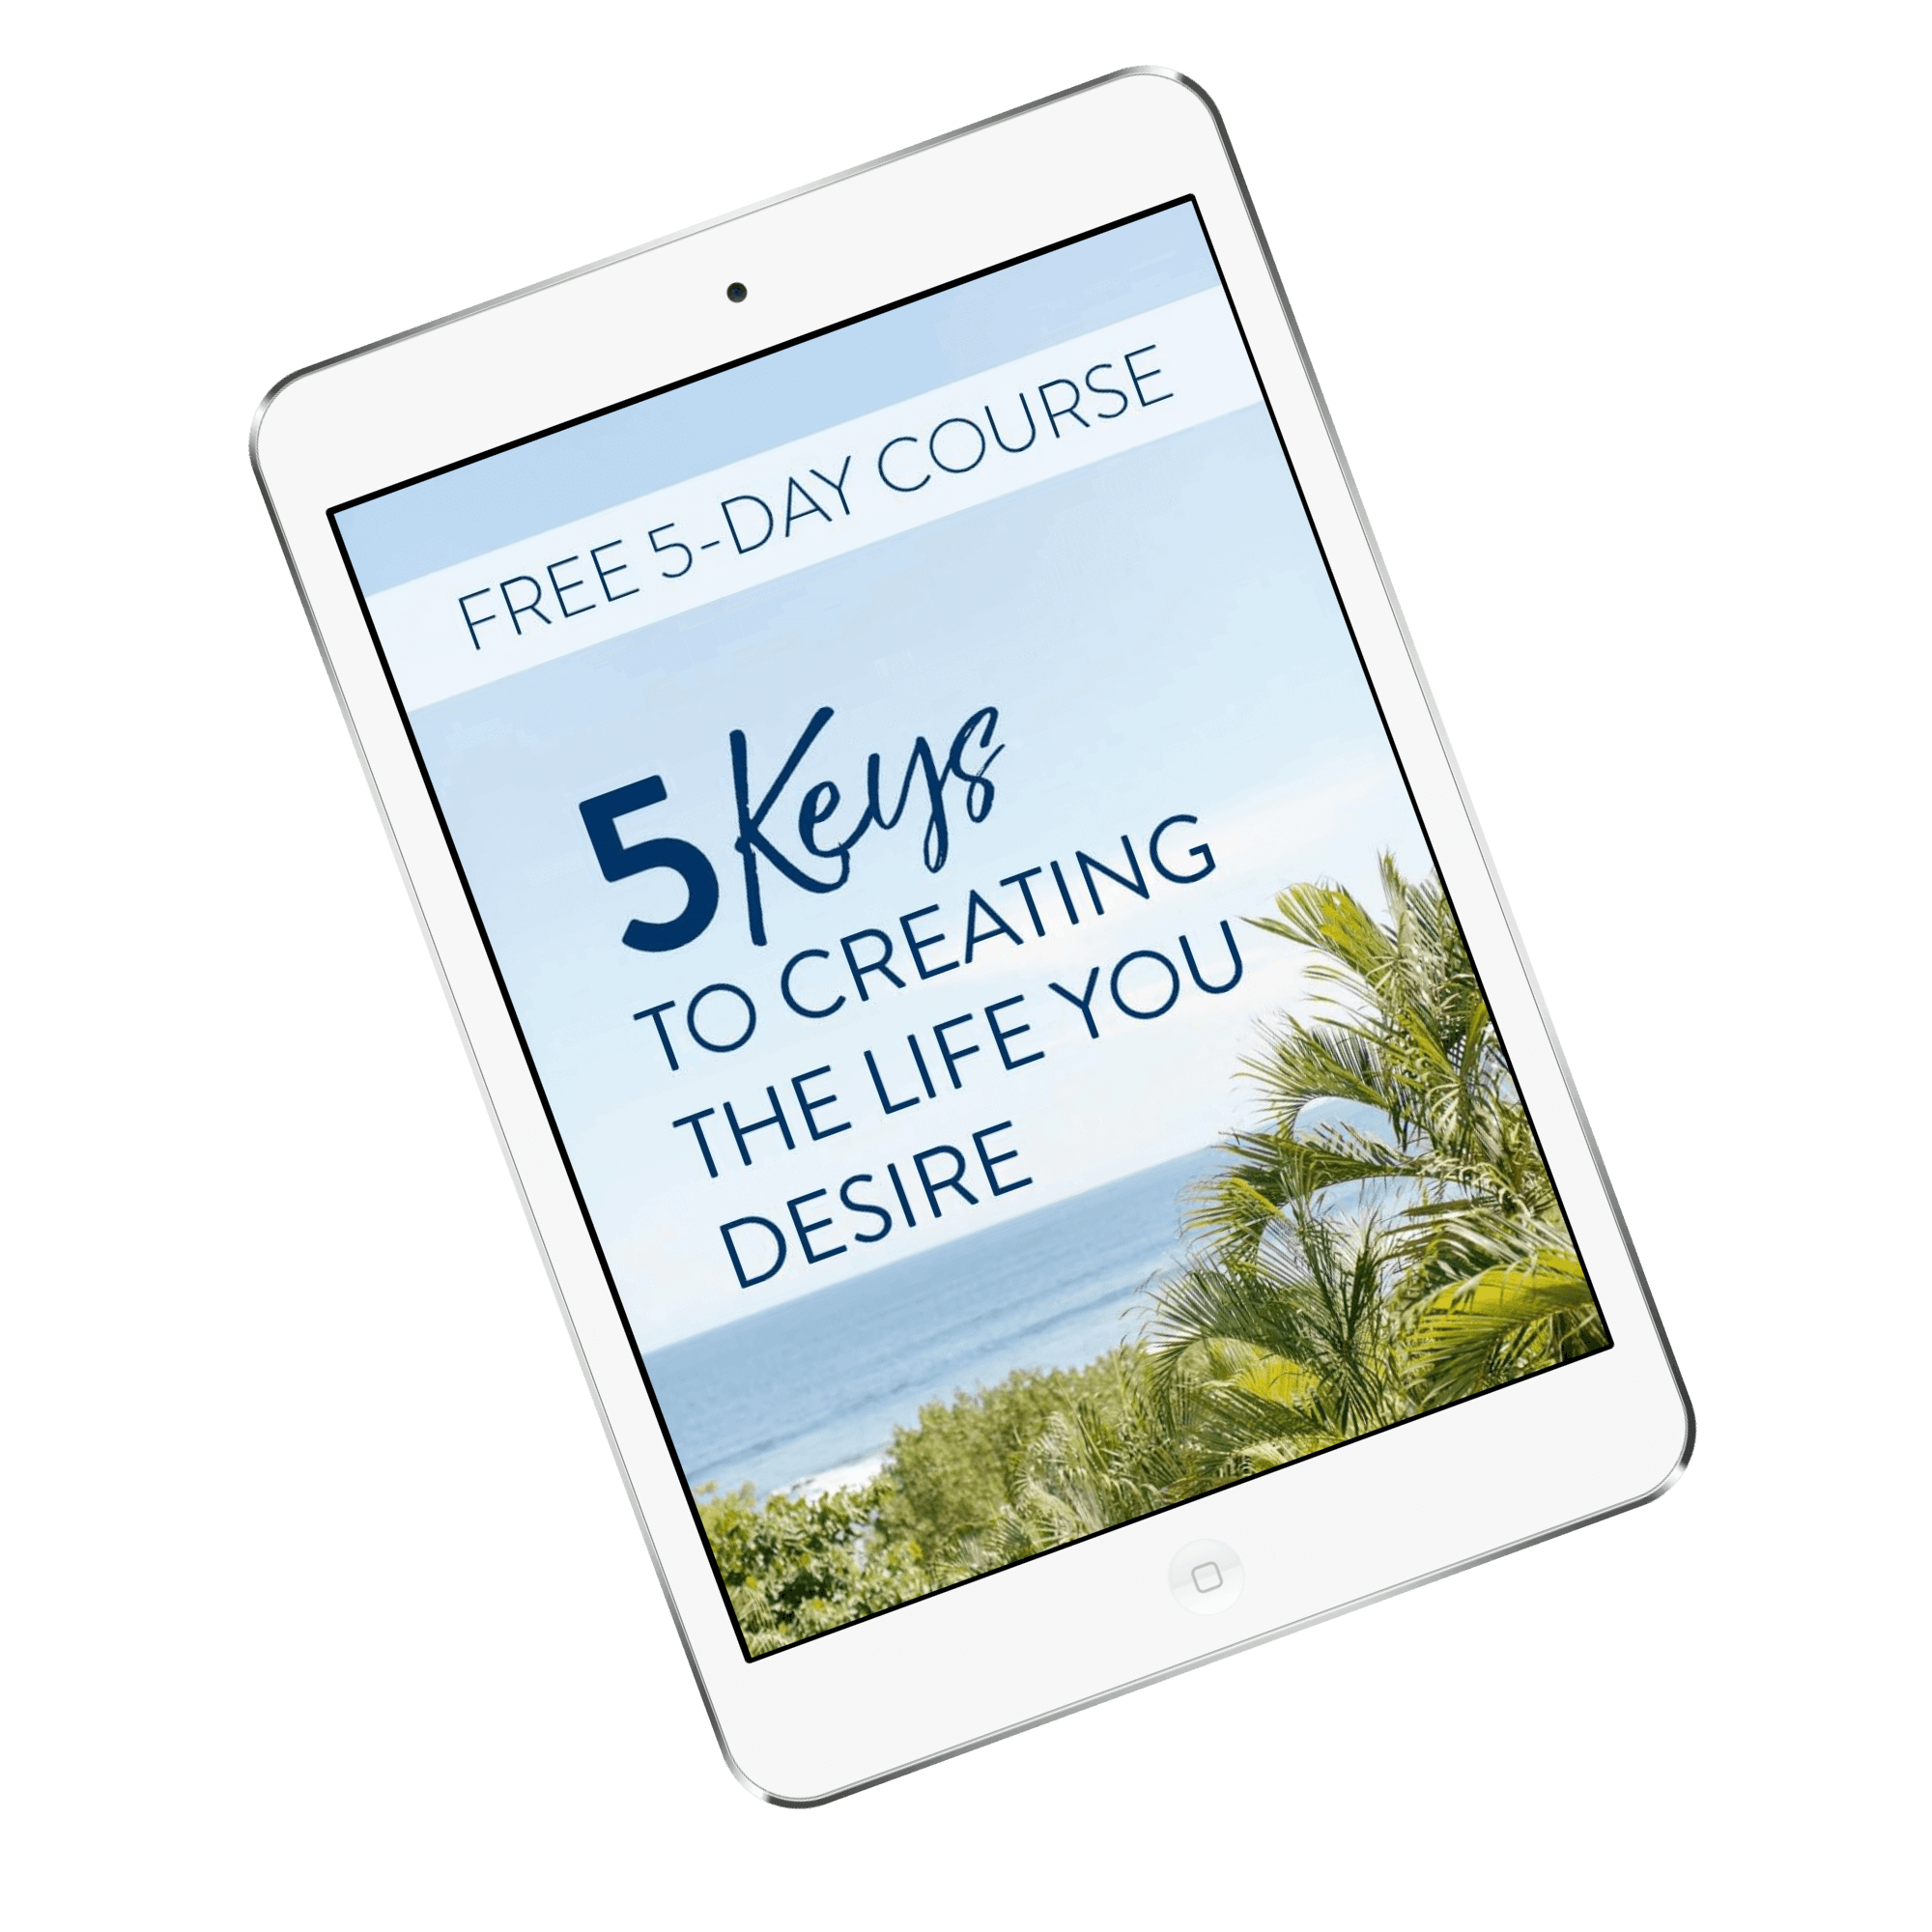 5 Keys to Creating the Life You Desire